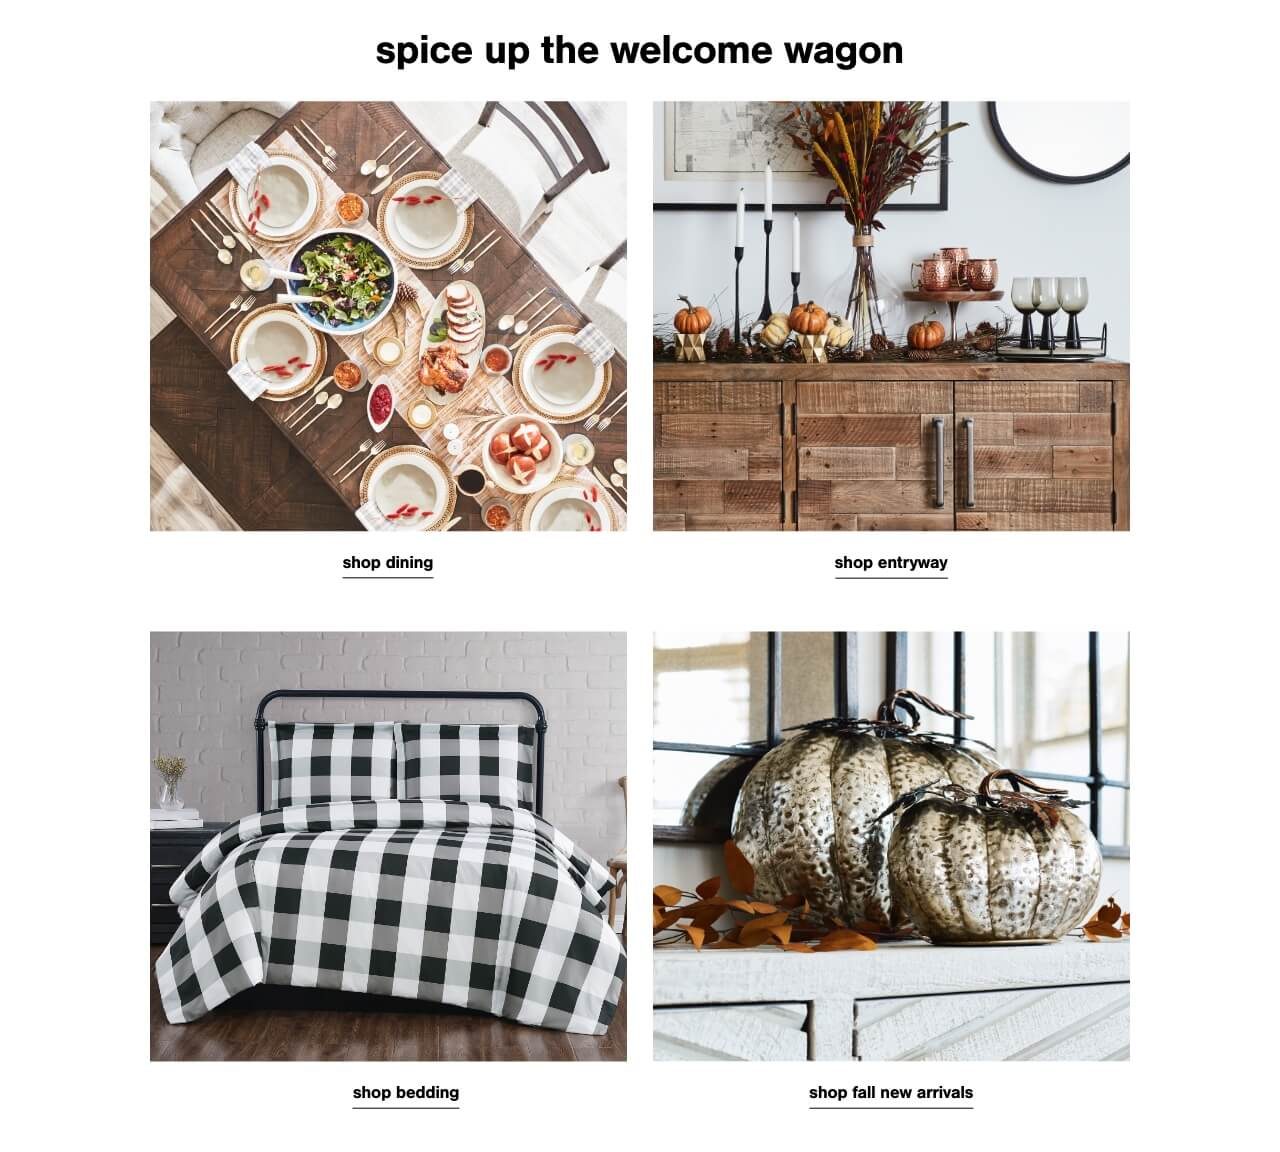 Thanksgiving Dining room,Entryway Holiday,Bathroom Best Sellers up to 50% off + Free Shipping,Guest Bed/TOB,Fall Decorations